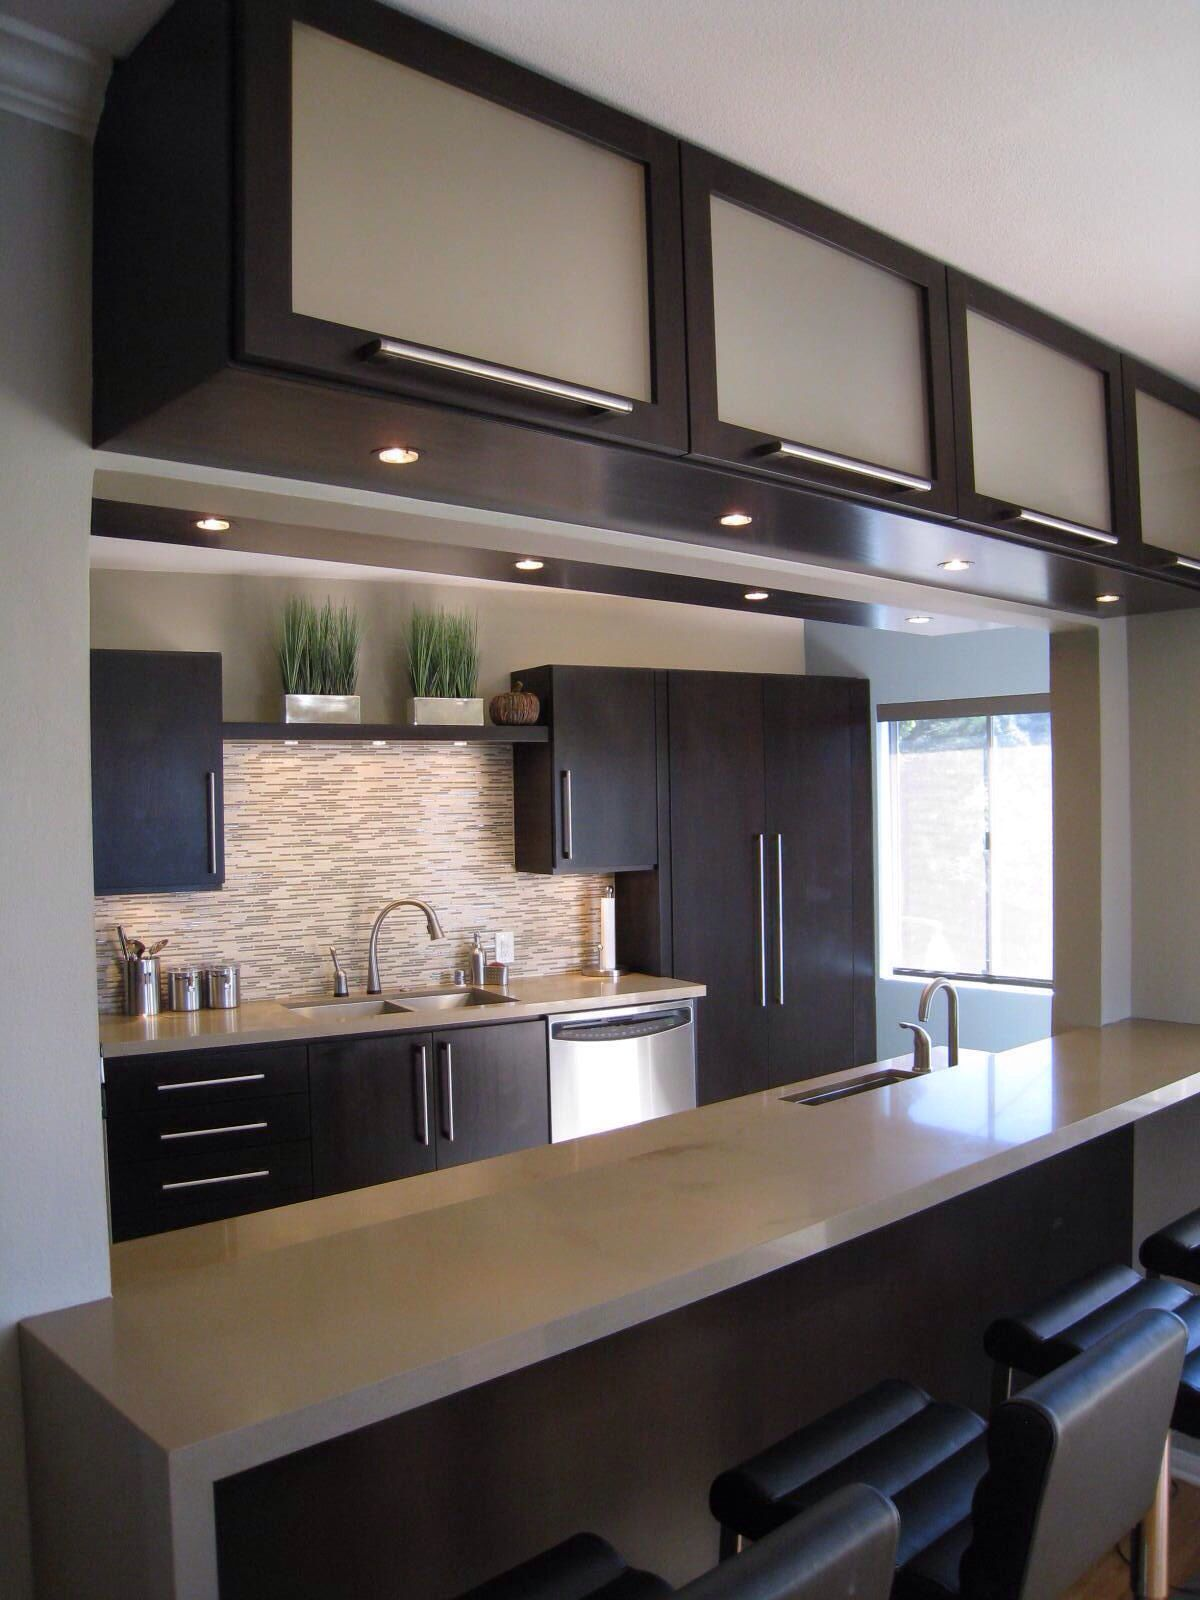 Modern Kitchen Cabinet Full Contemporary Cabinets For A Posh And Sleek Finish